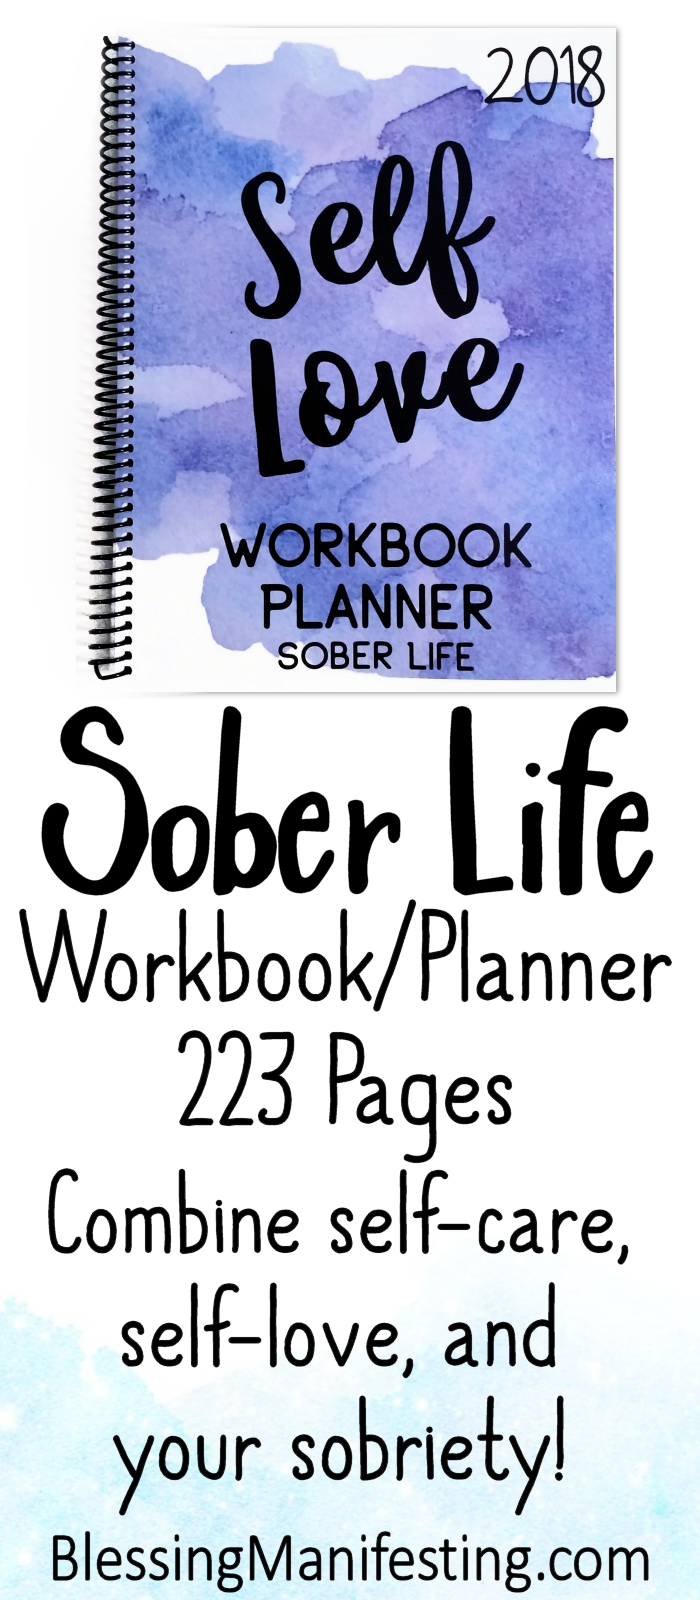 2018 Self-Love Workbook and Planner | Sobriety, Recovery and Planners